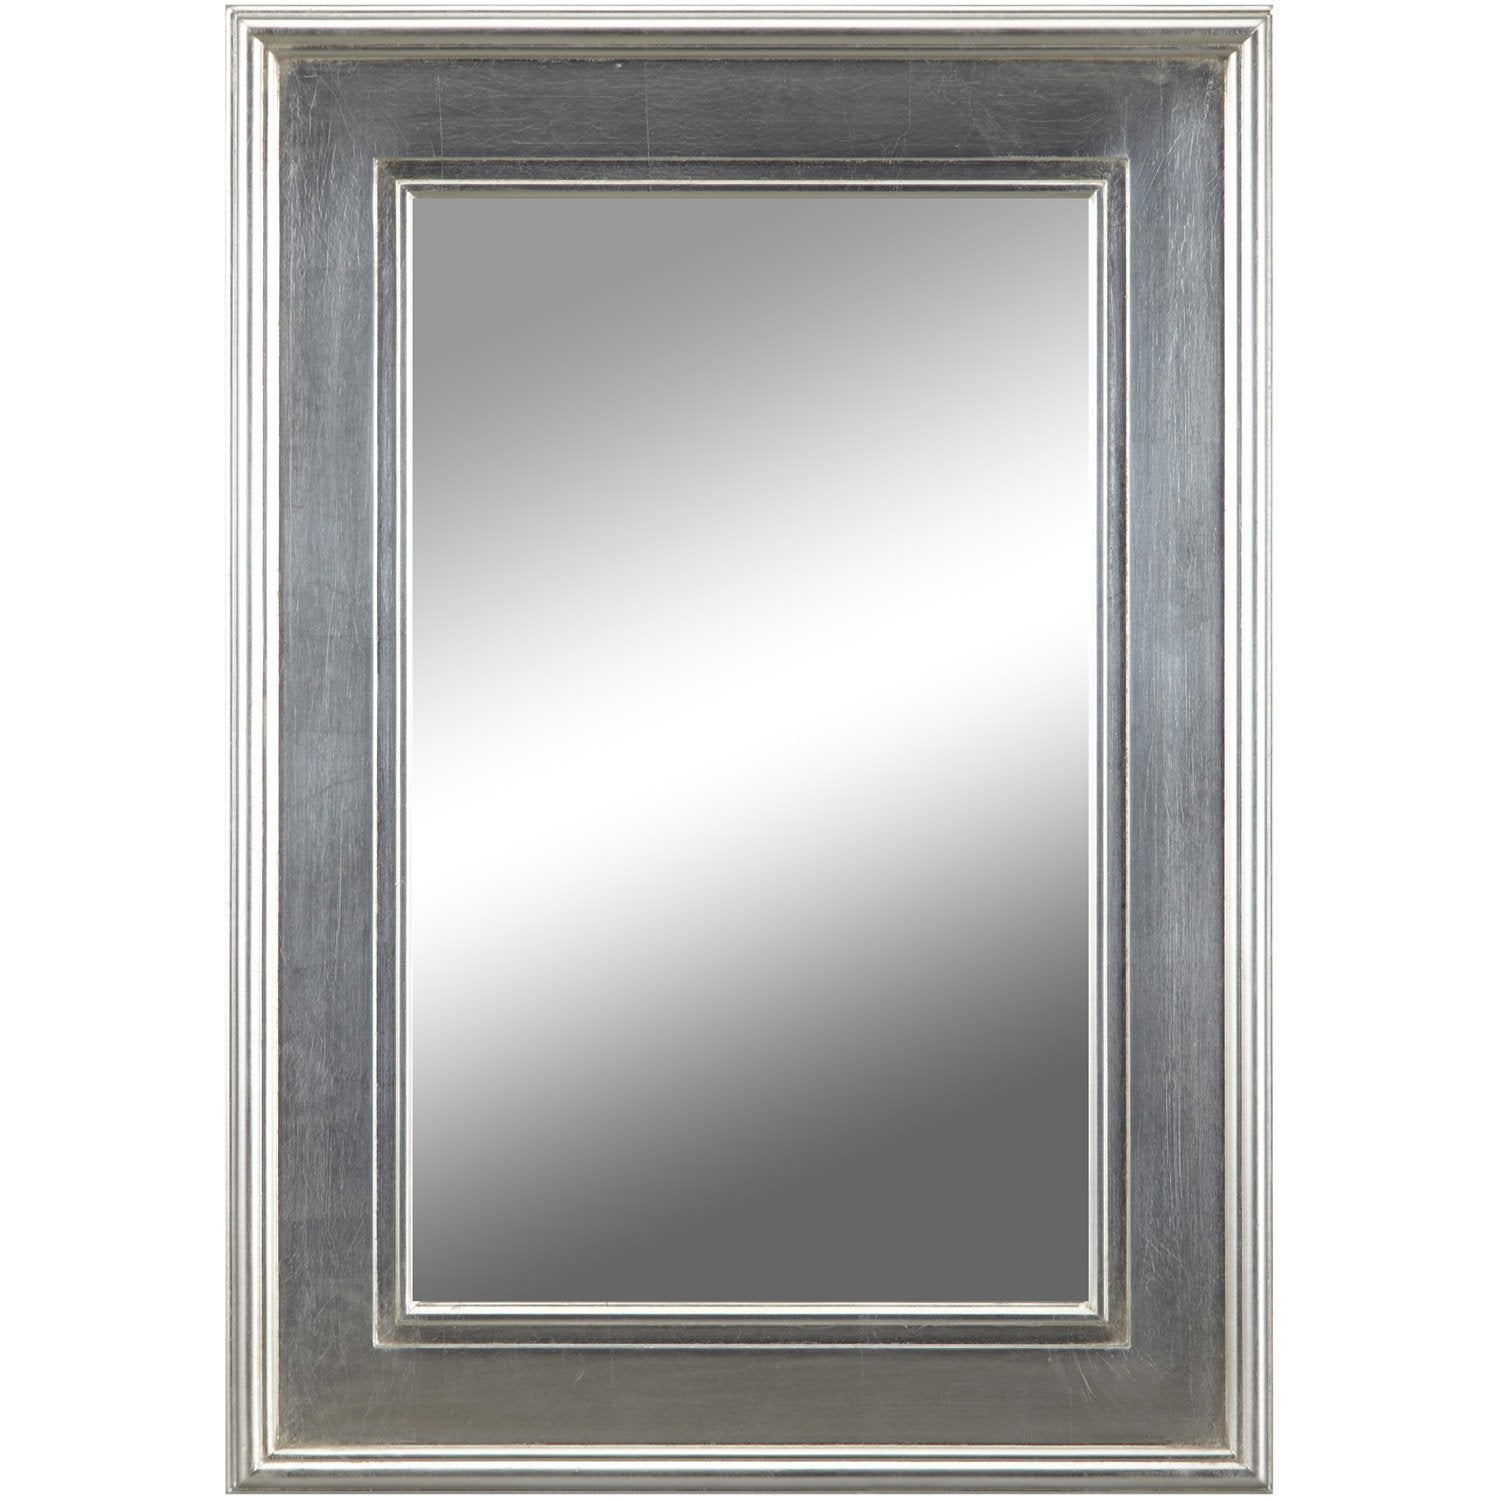 Miroir tisbury rectangle argent 50x70 cm leroy merlin for Miroir leroy merlin